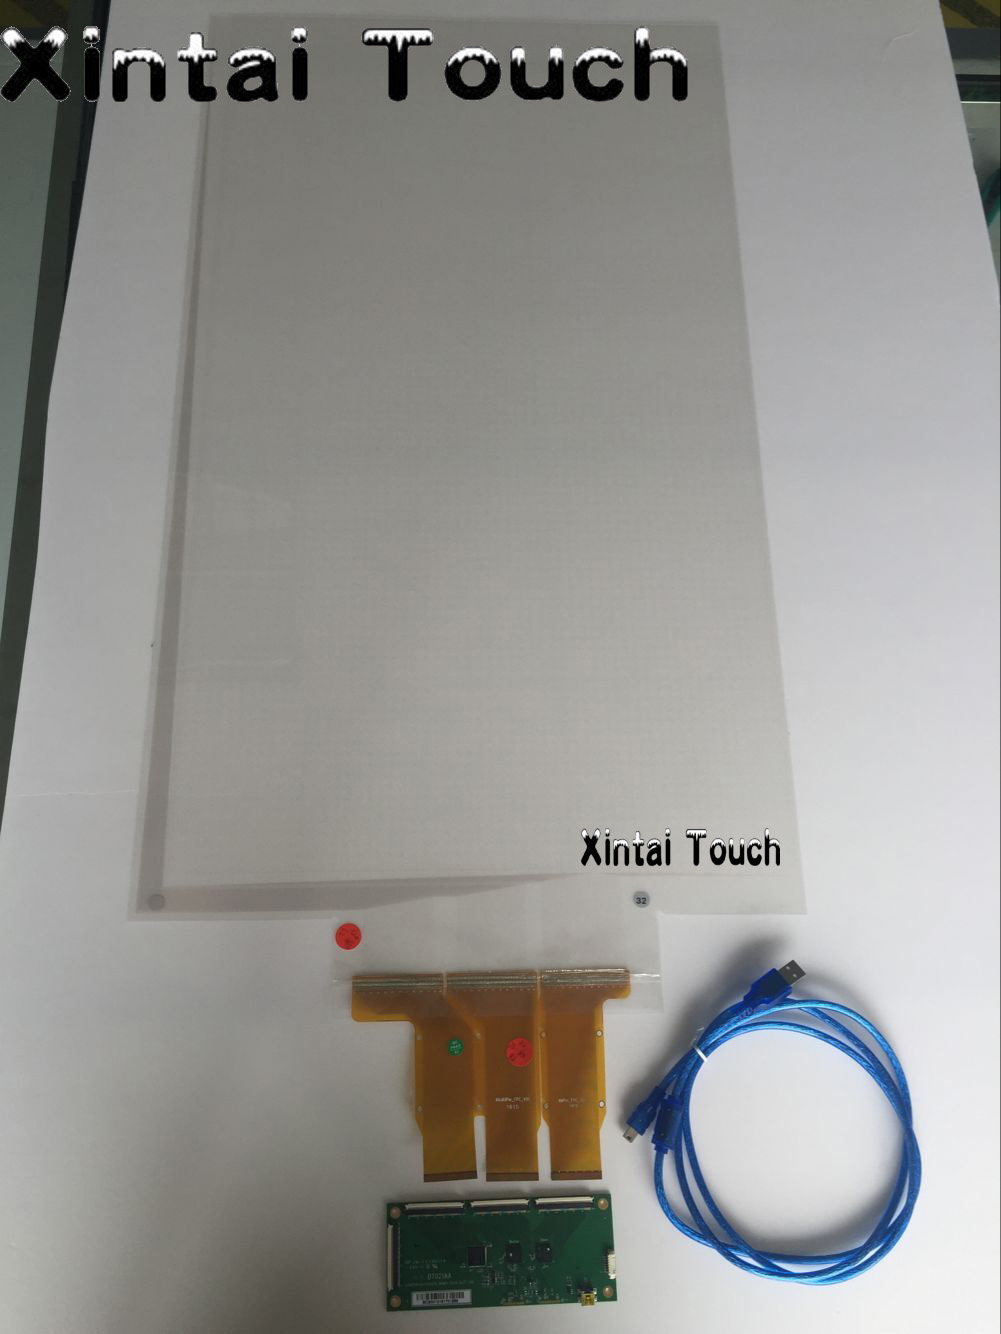 Best price 40 interactive touch foil film,transparent touch screen film through LCD or projector (window shop display)